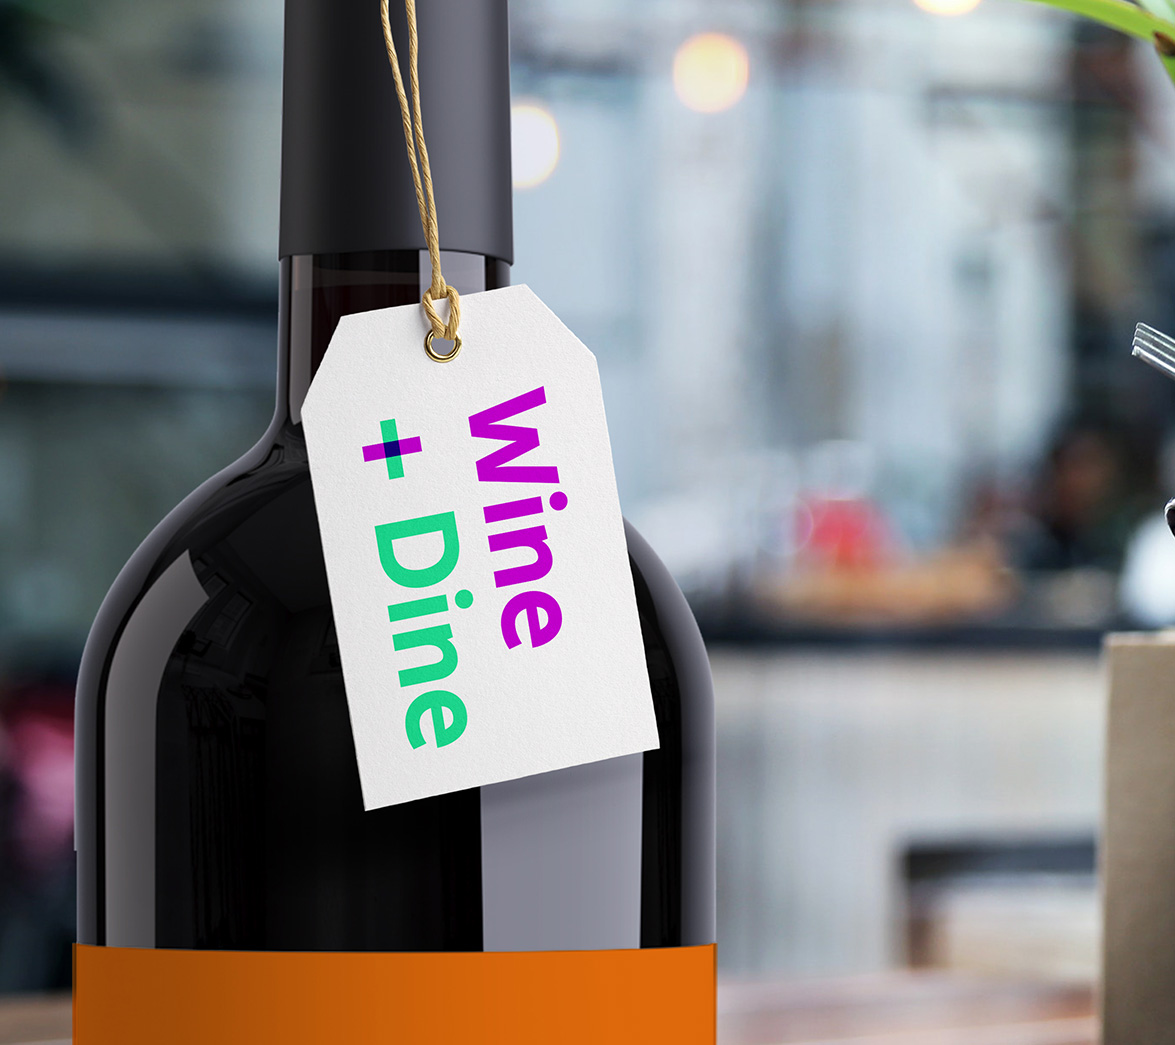 Wine and dine label design for new startup brand My Date Night, designed by White Bear Studio